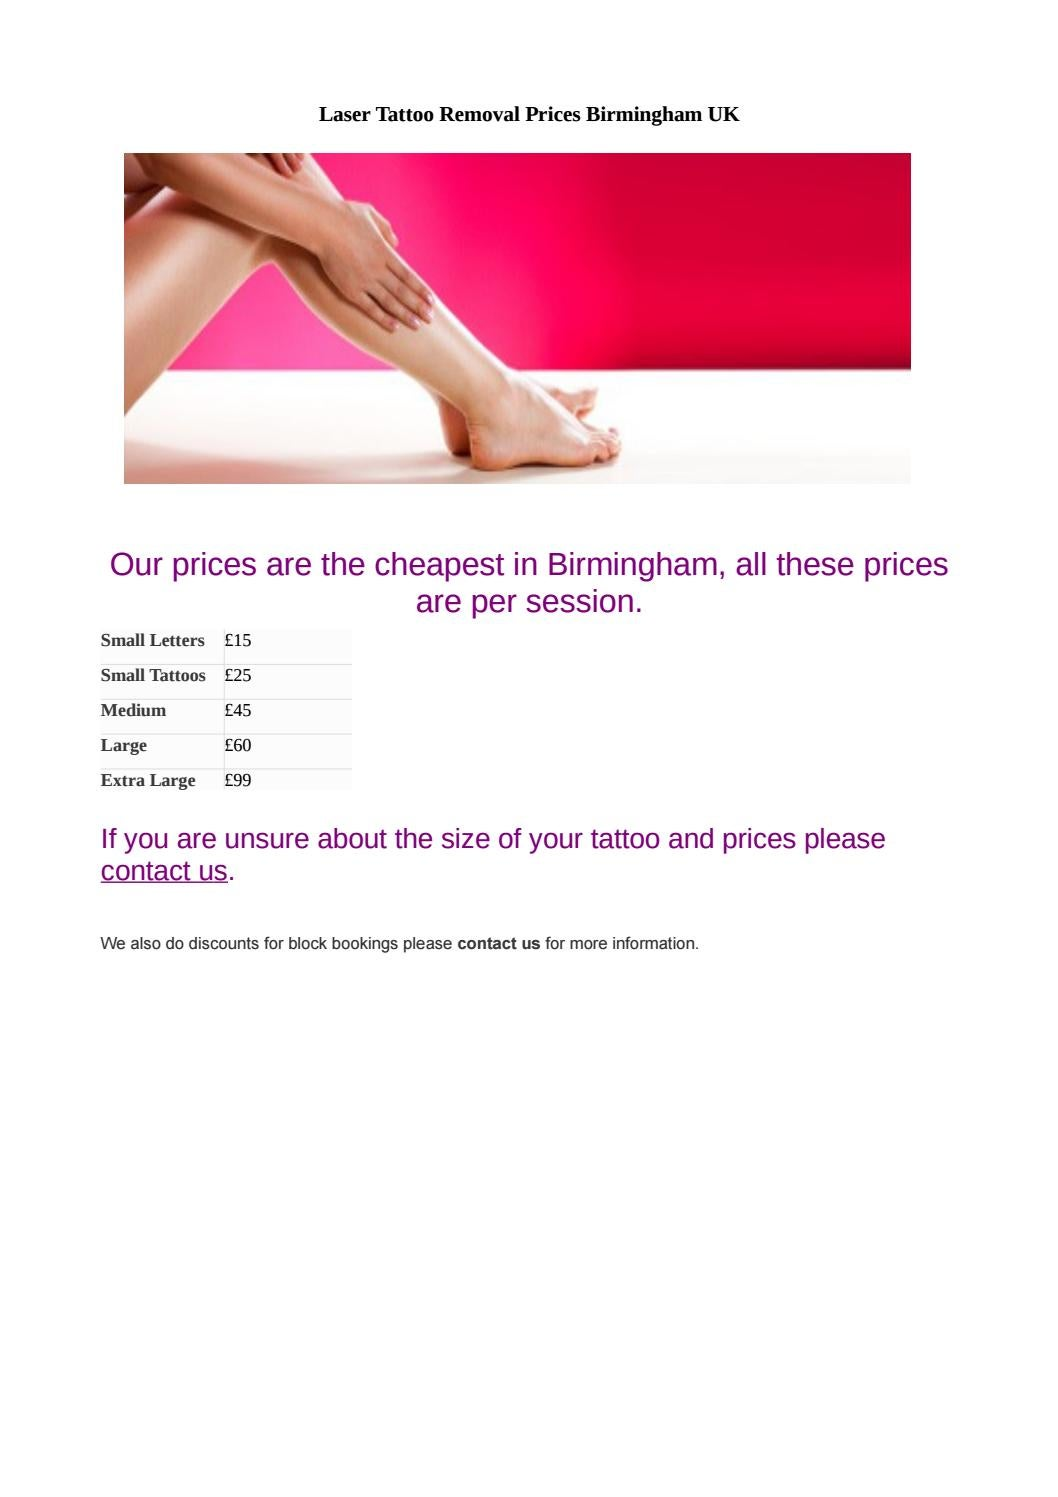 Laser Tattoo Removal Prices Birmingham UK by Unwanted Tattoos - issuu